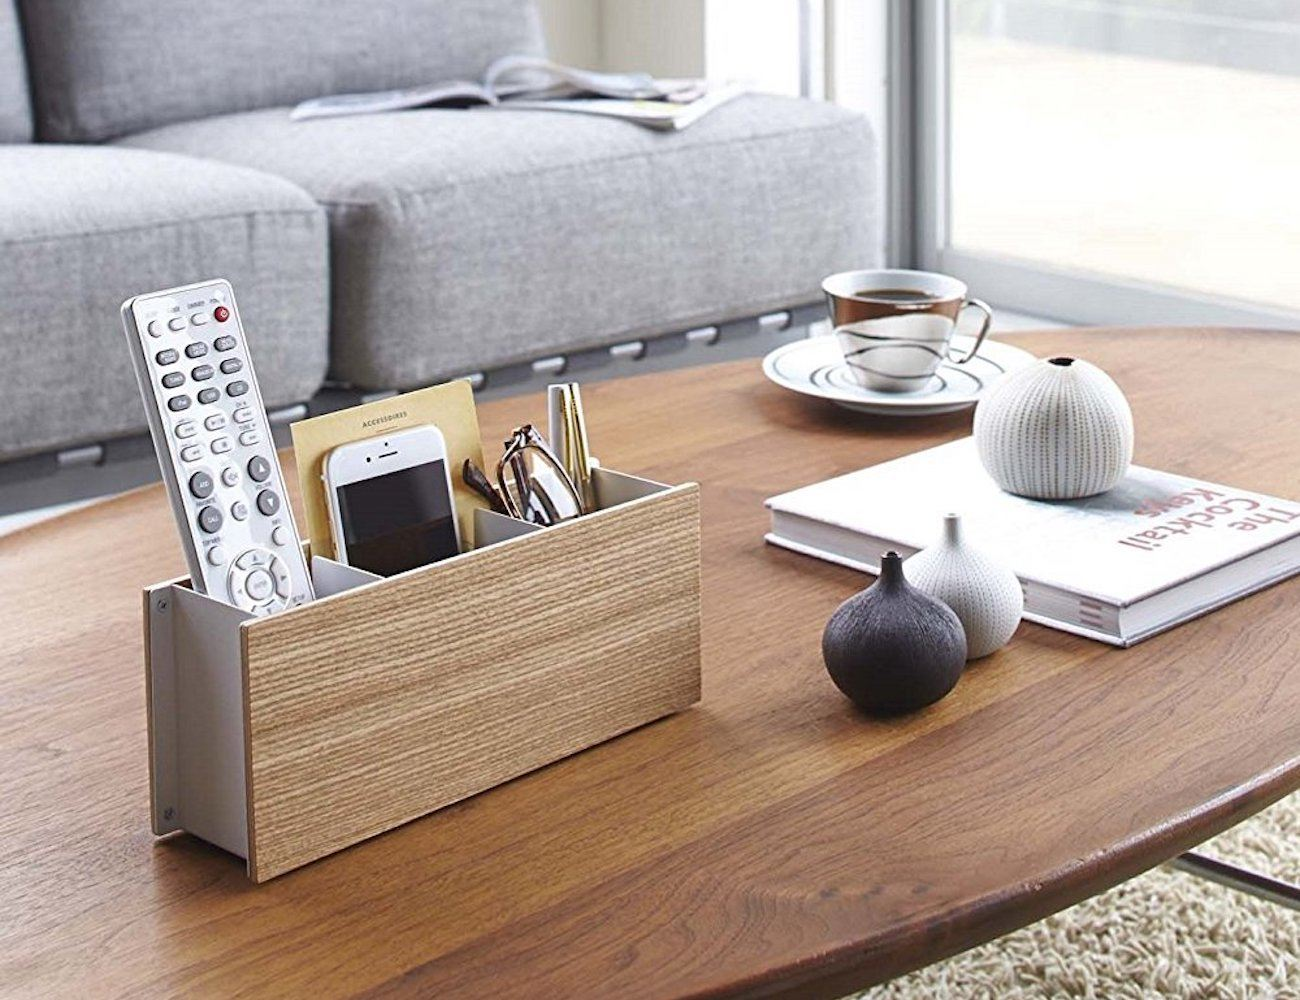 Rin Pen and Remote Control Rack